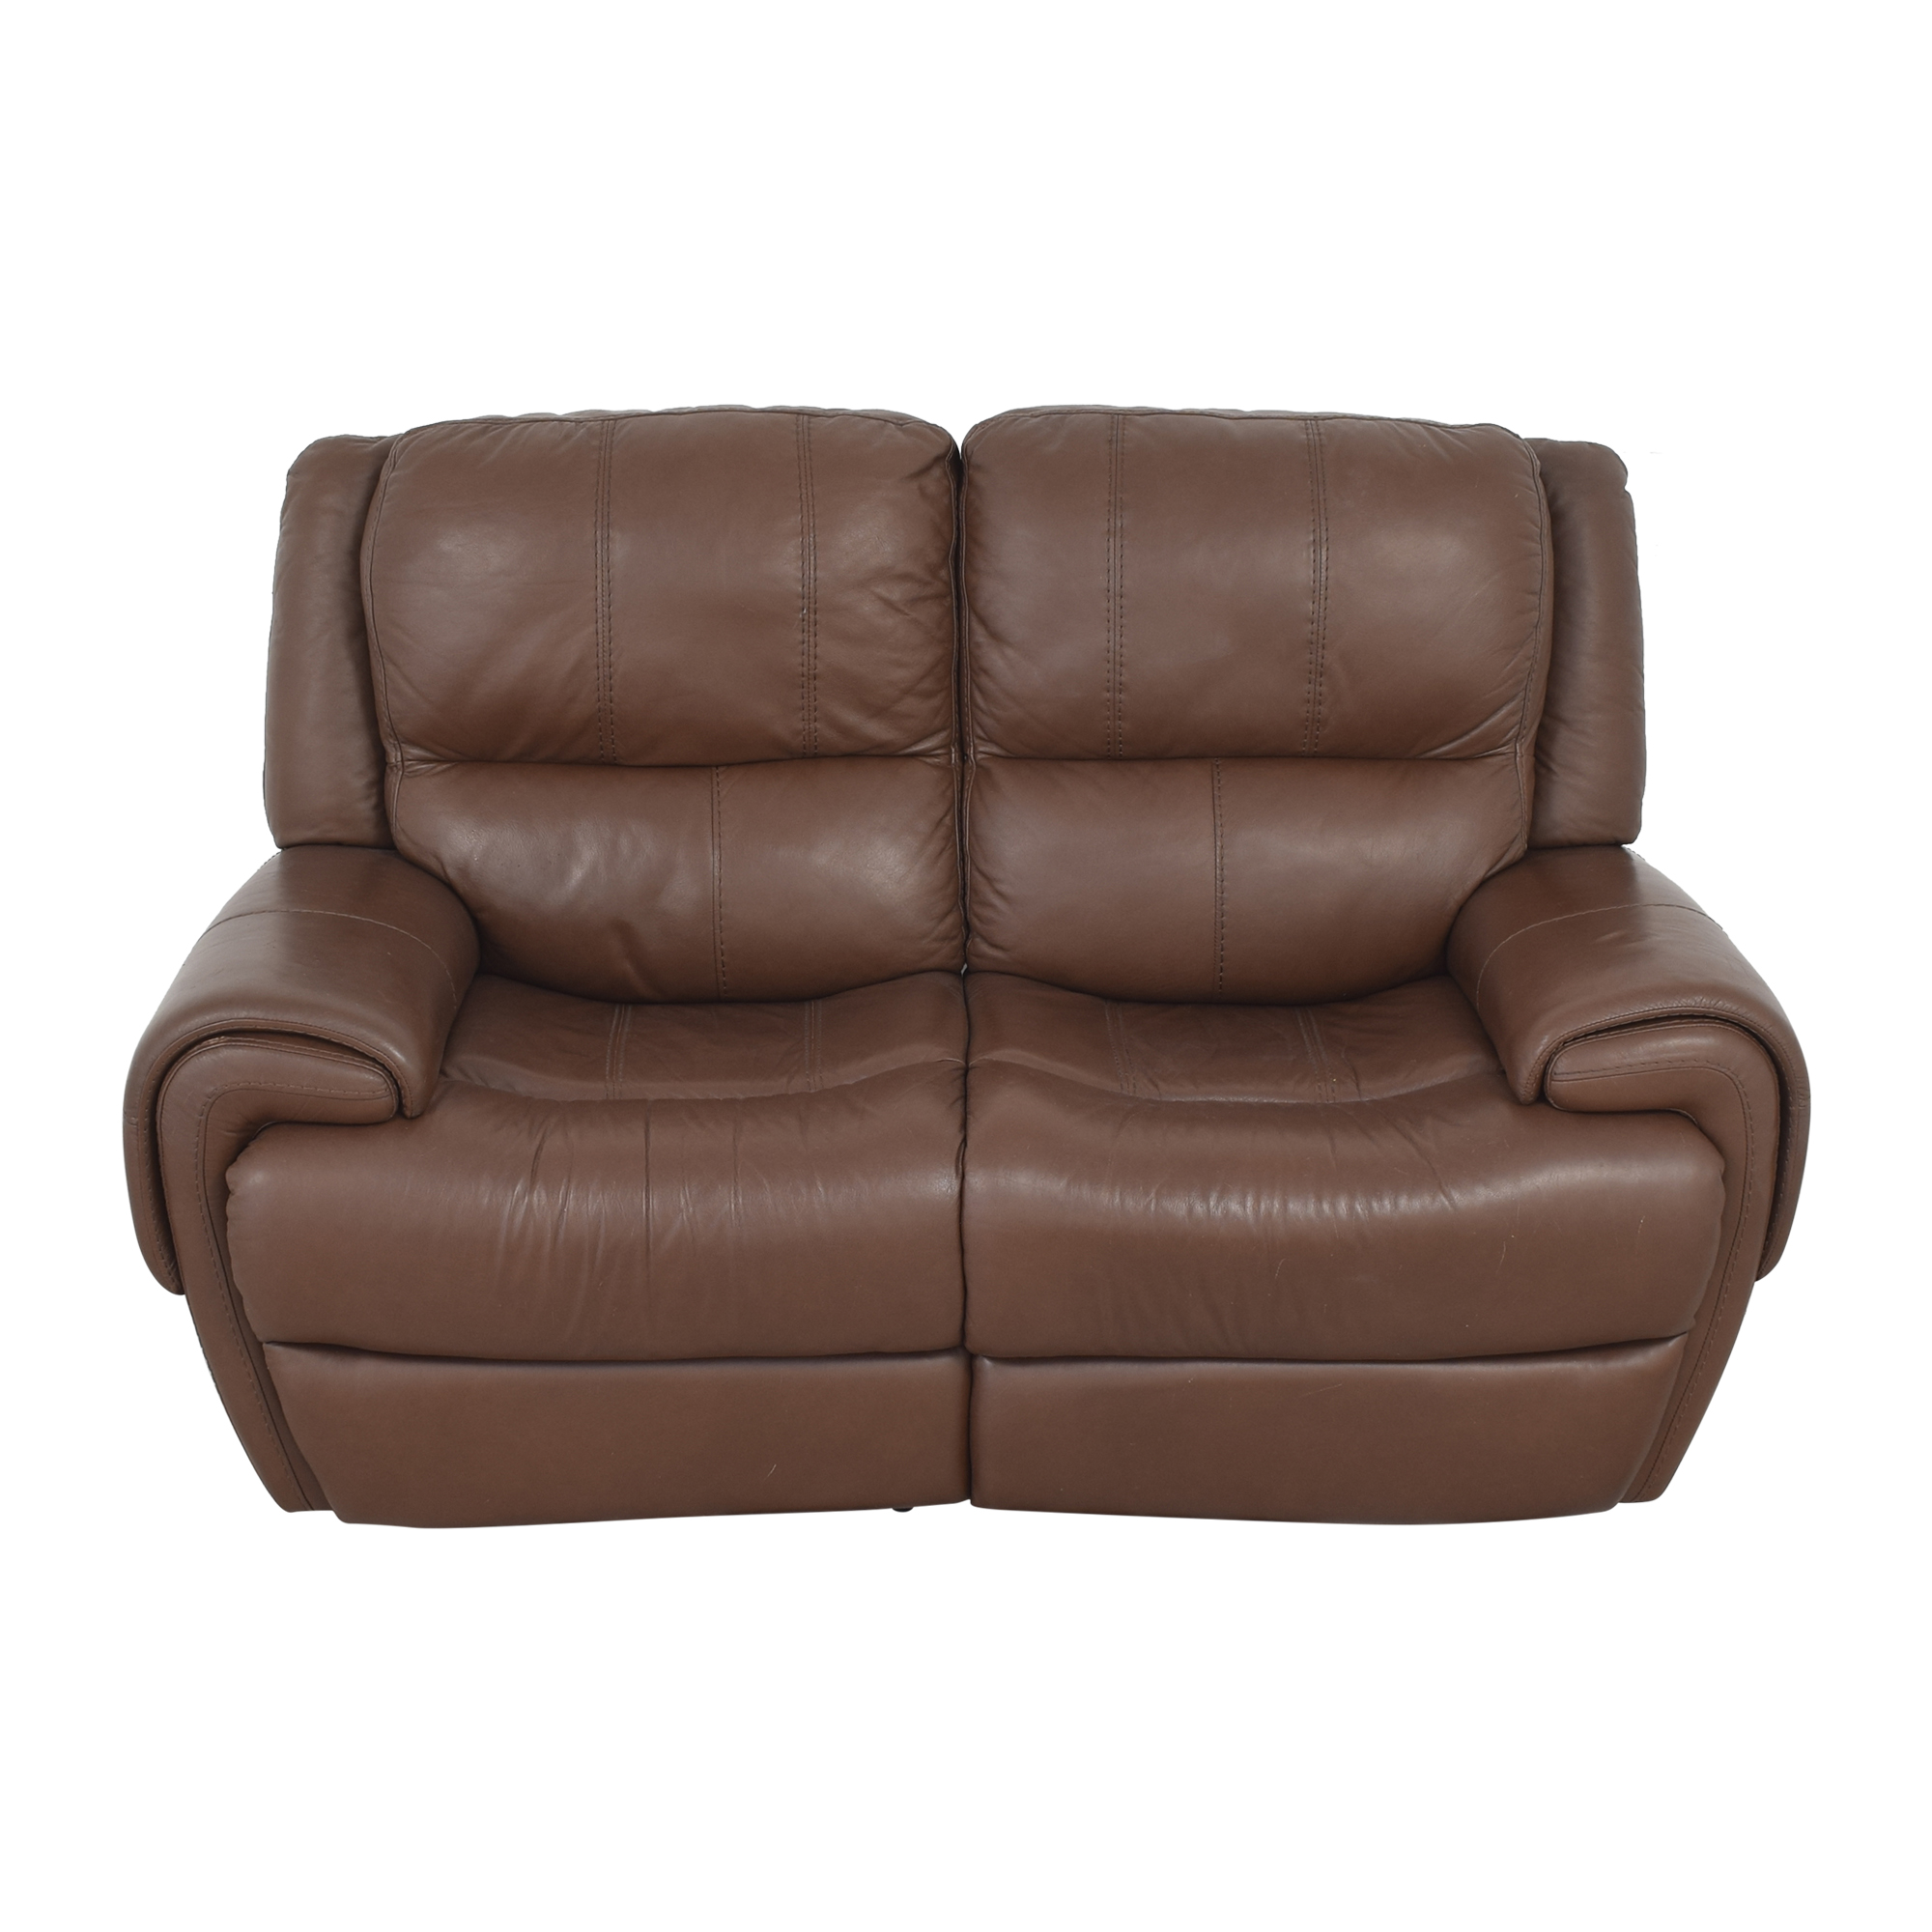 Raymour & Flanigan Raymour & Flanigan Colvin Power-Reclining Loveseat Loveseats